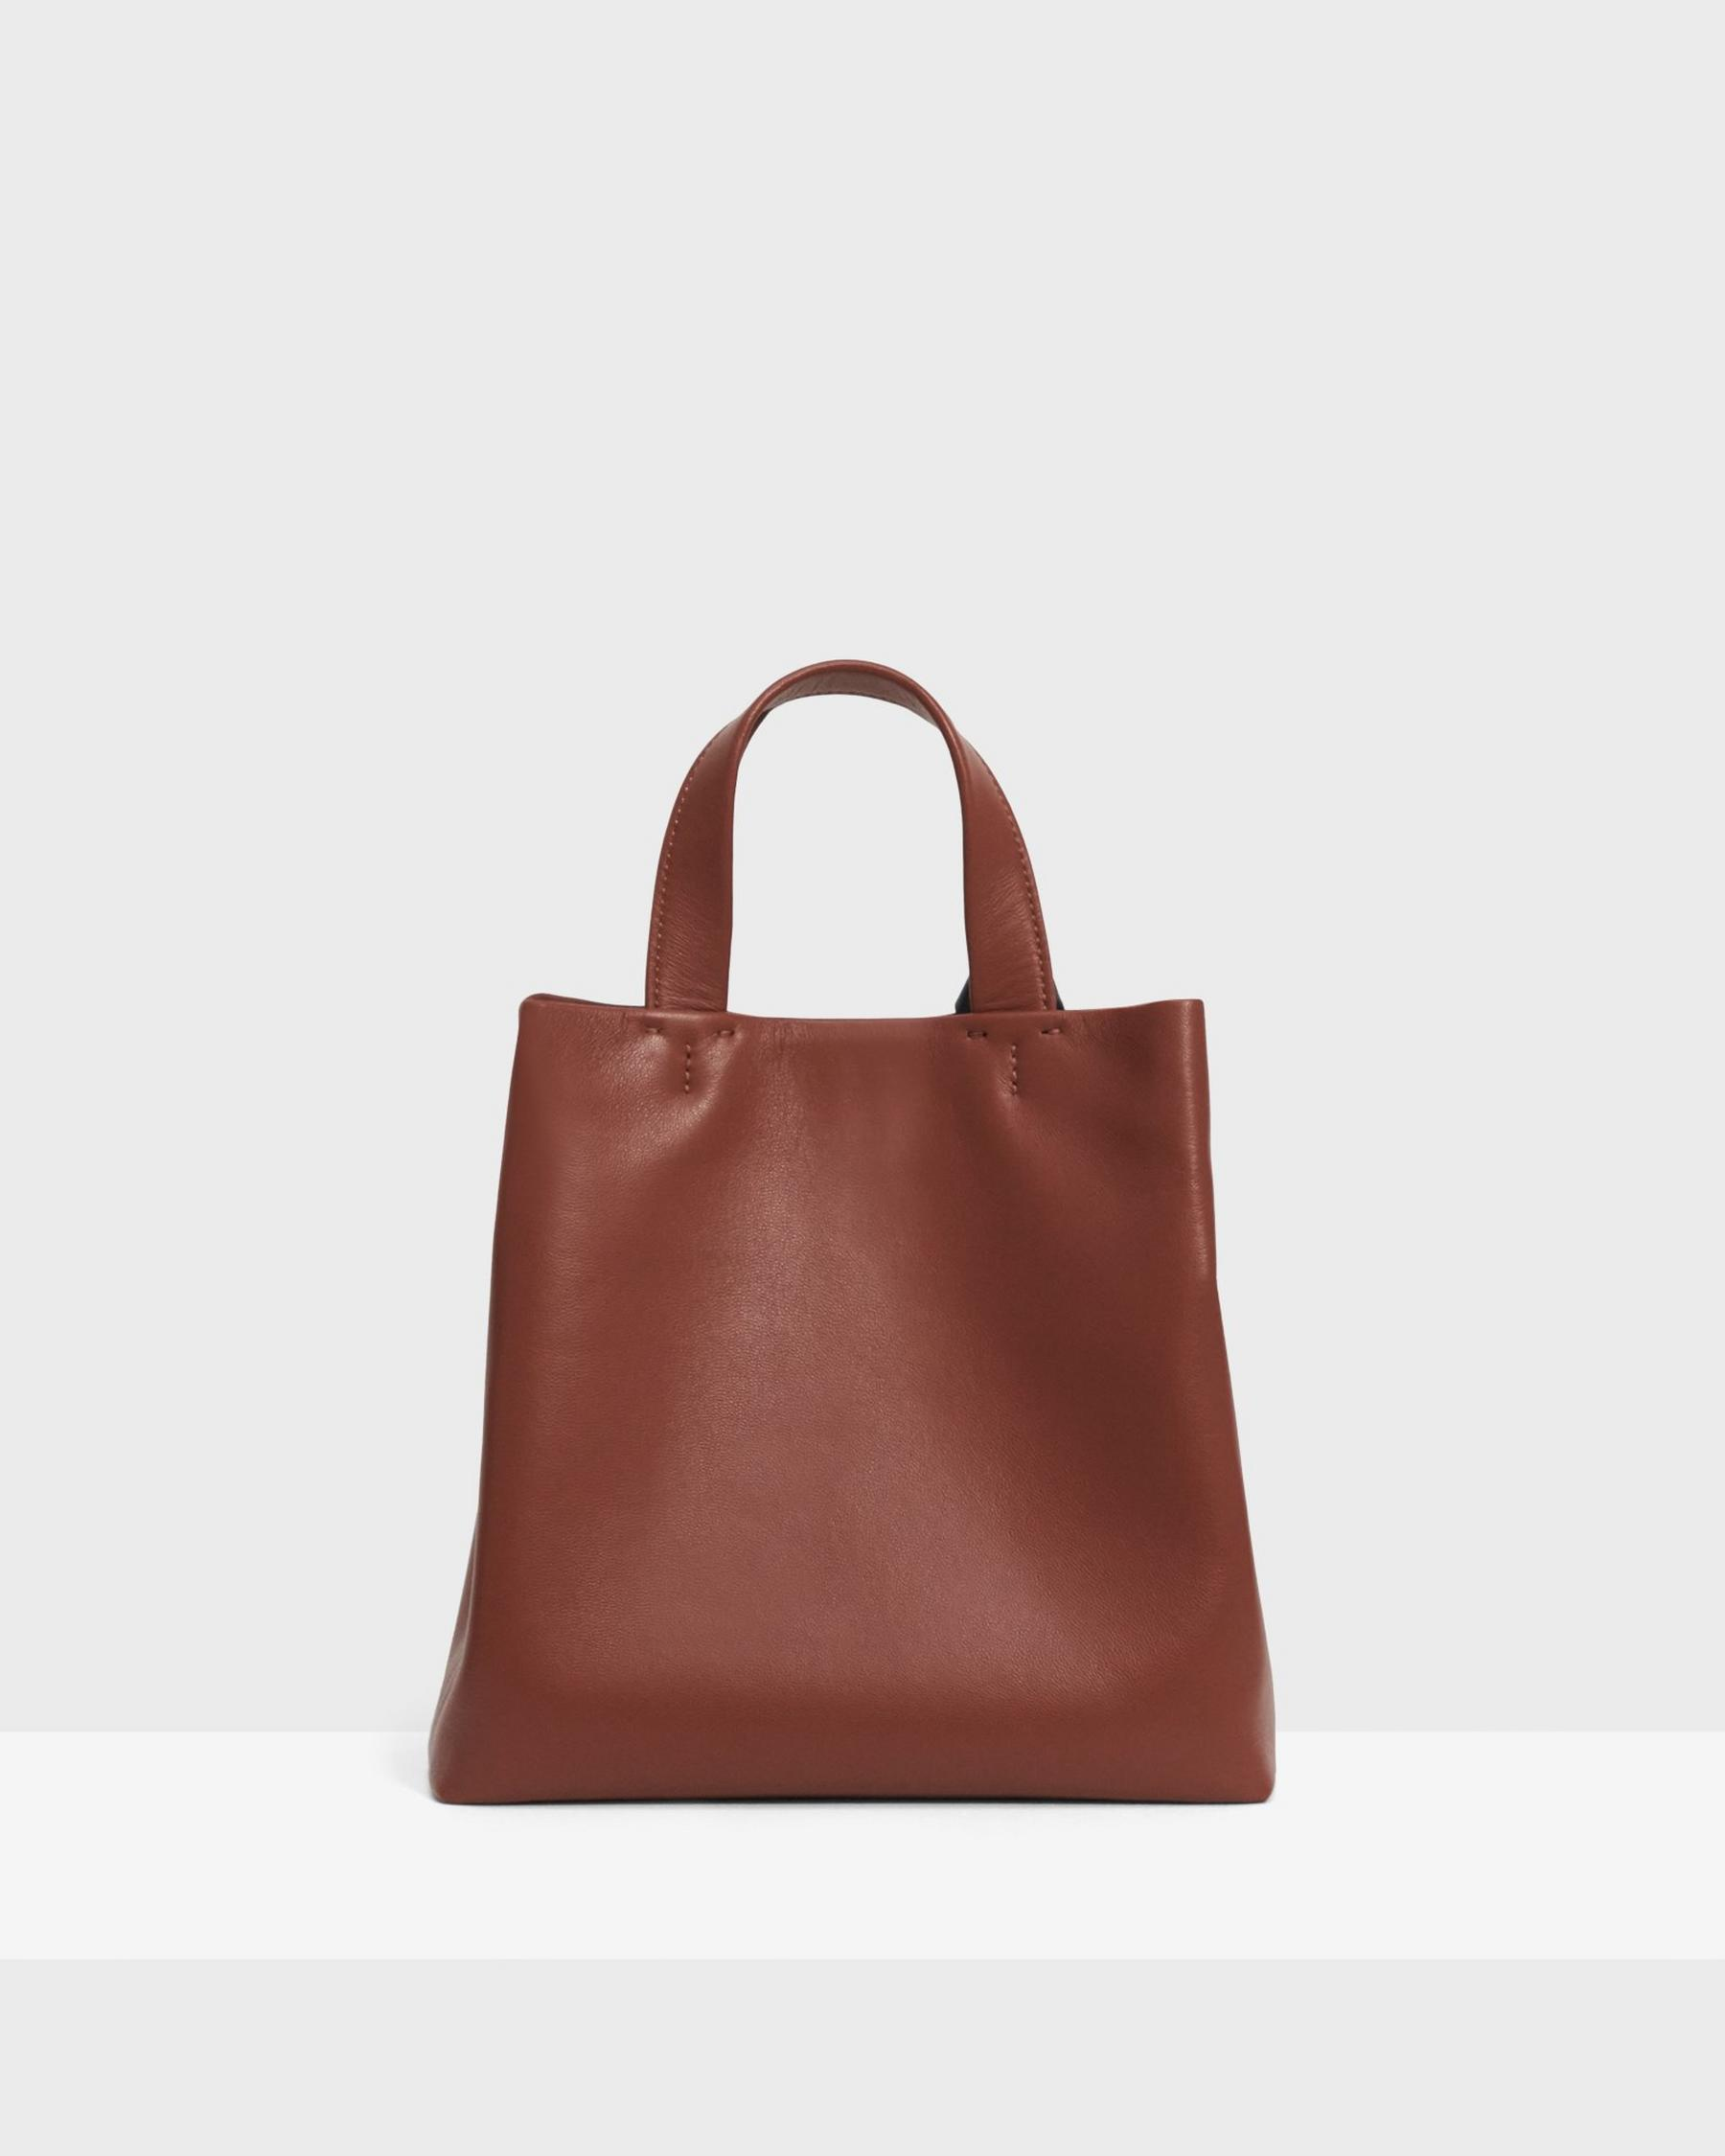 Small Simple Tote in Leather 1